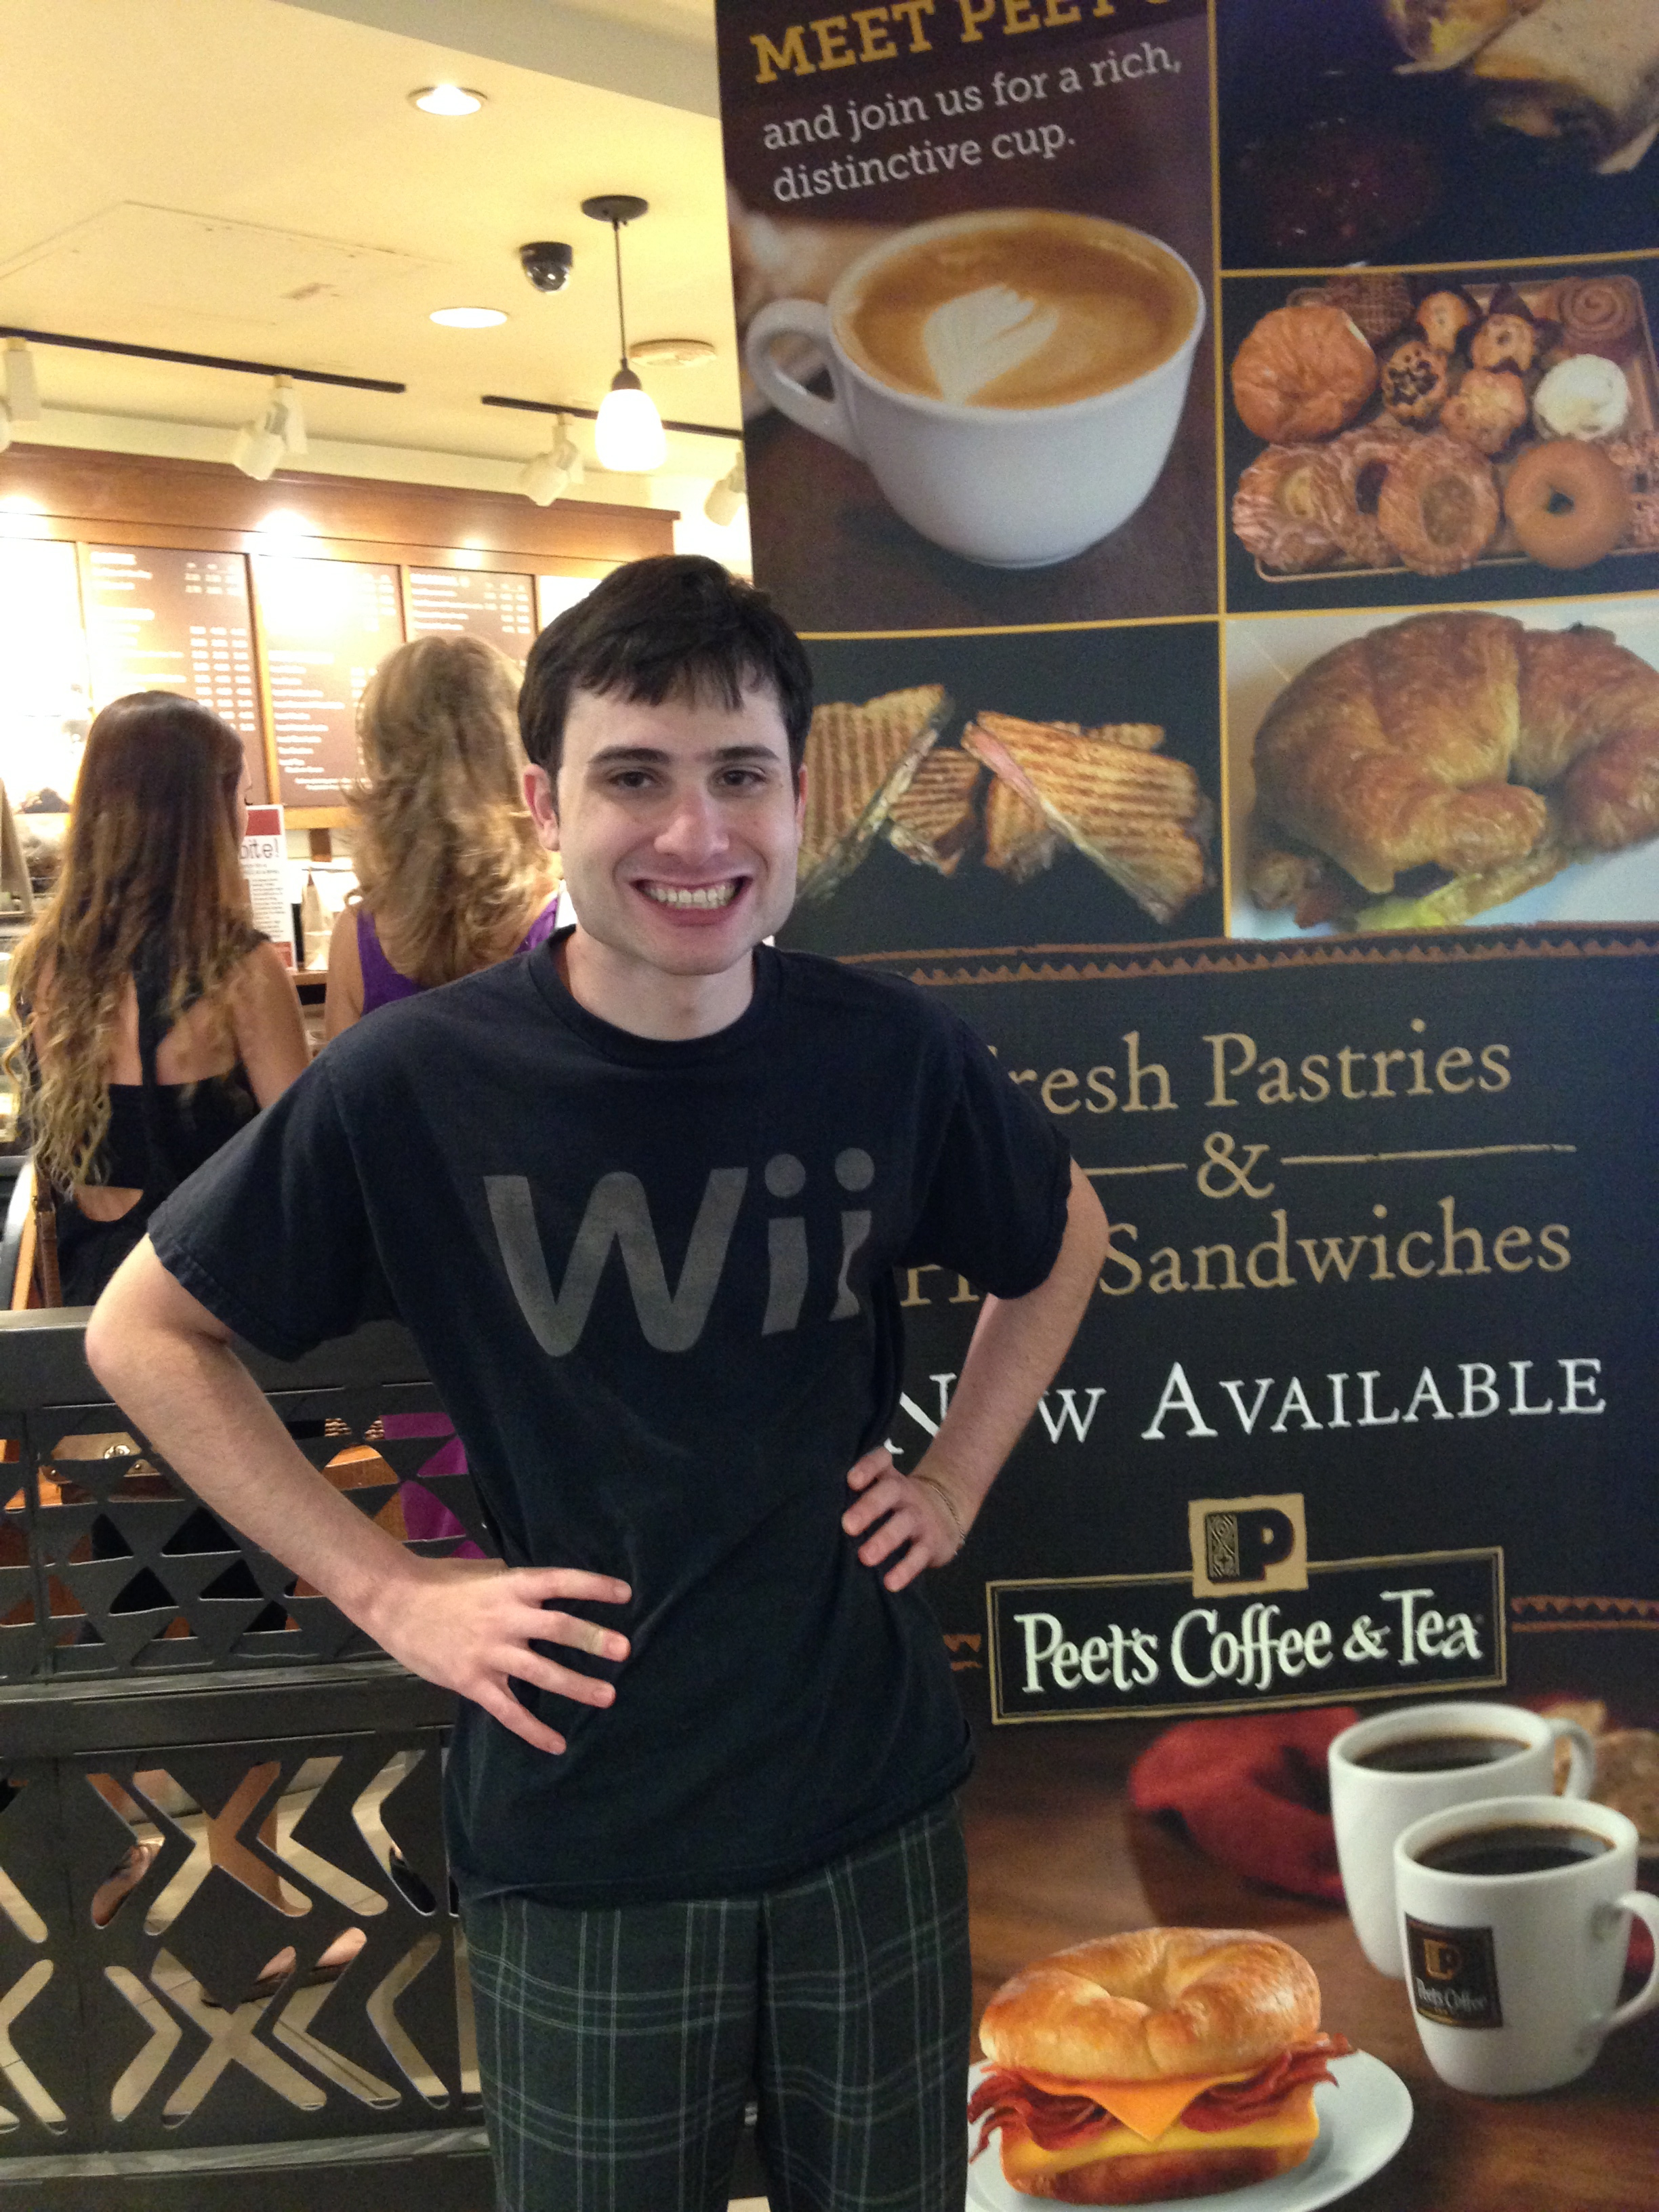 Matt at Peet's Coffee & Tea